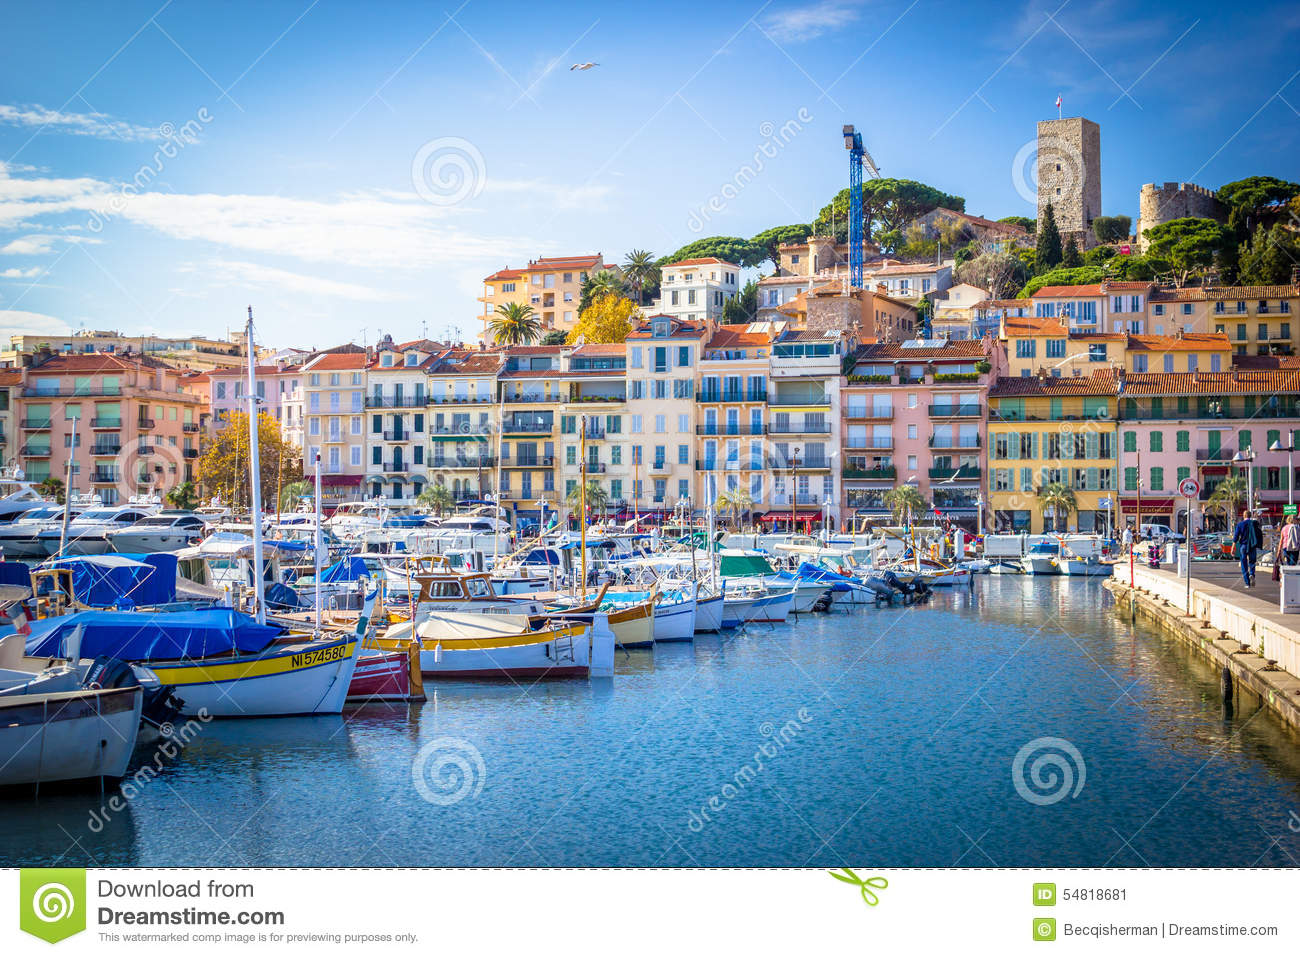 Marina of boats in Cannes France